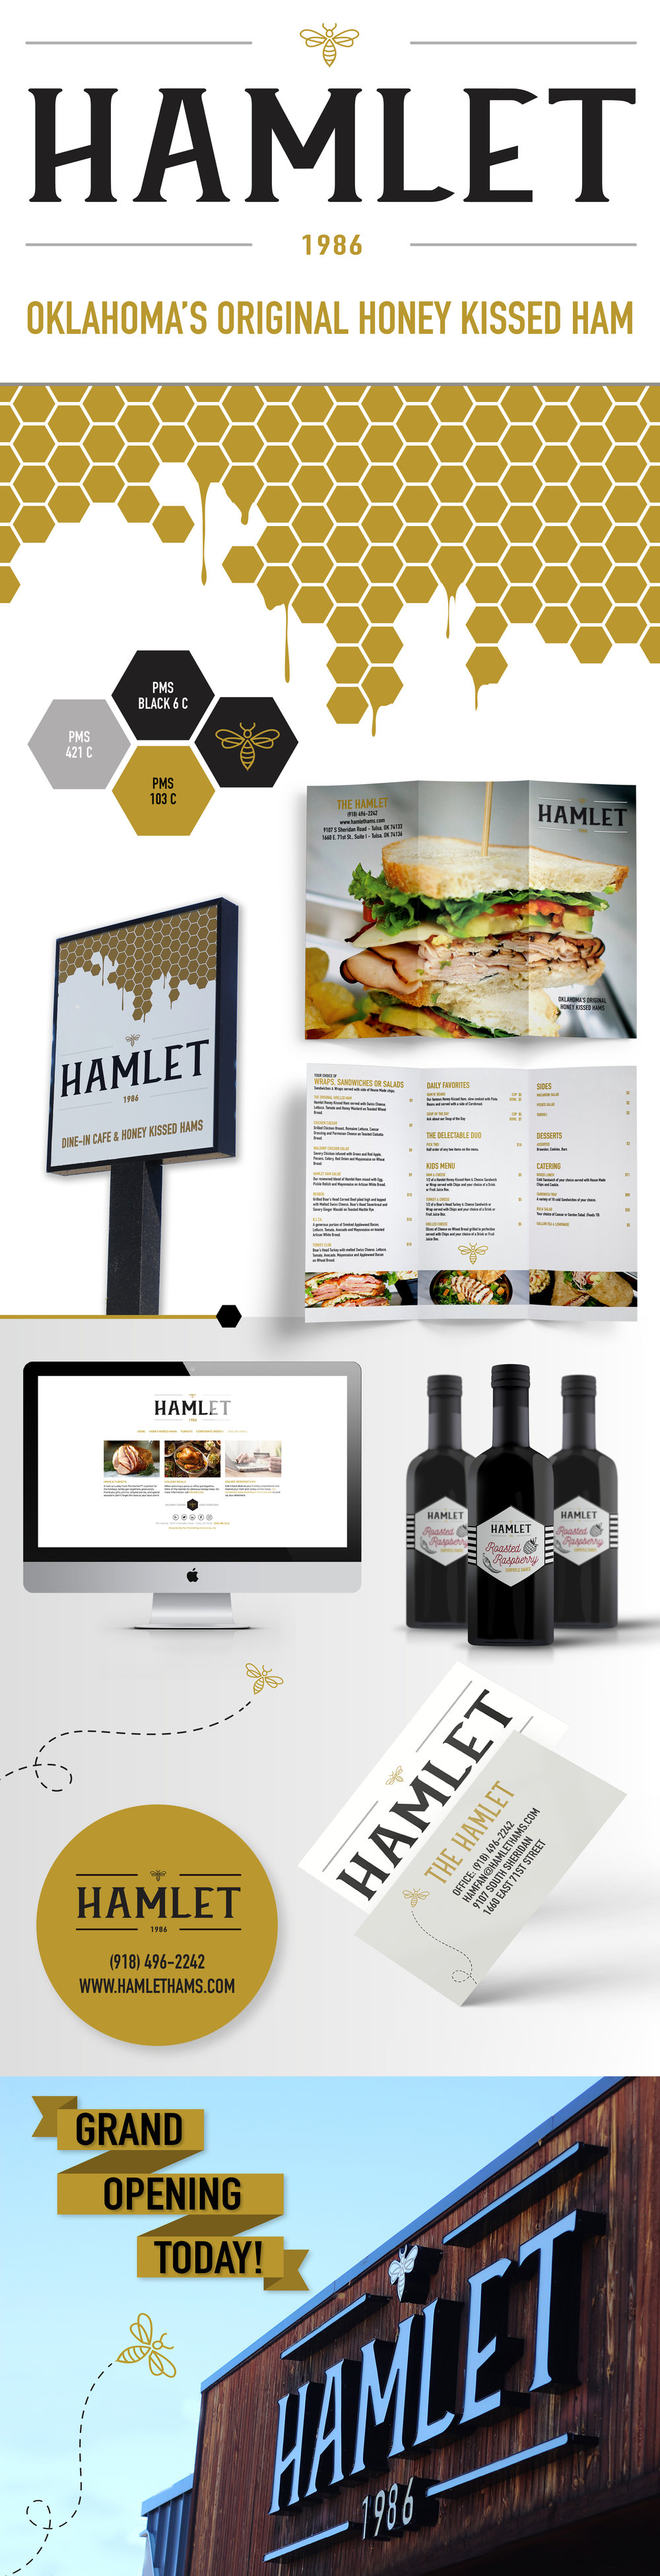 Chatter Marketing - Hamlet Branding